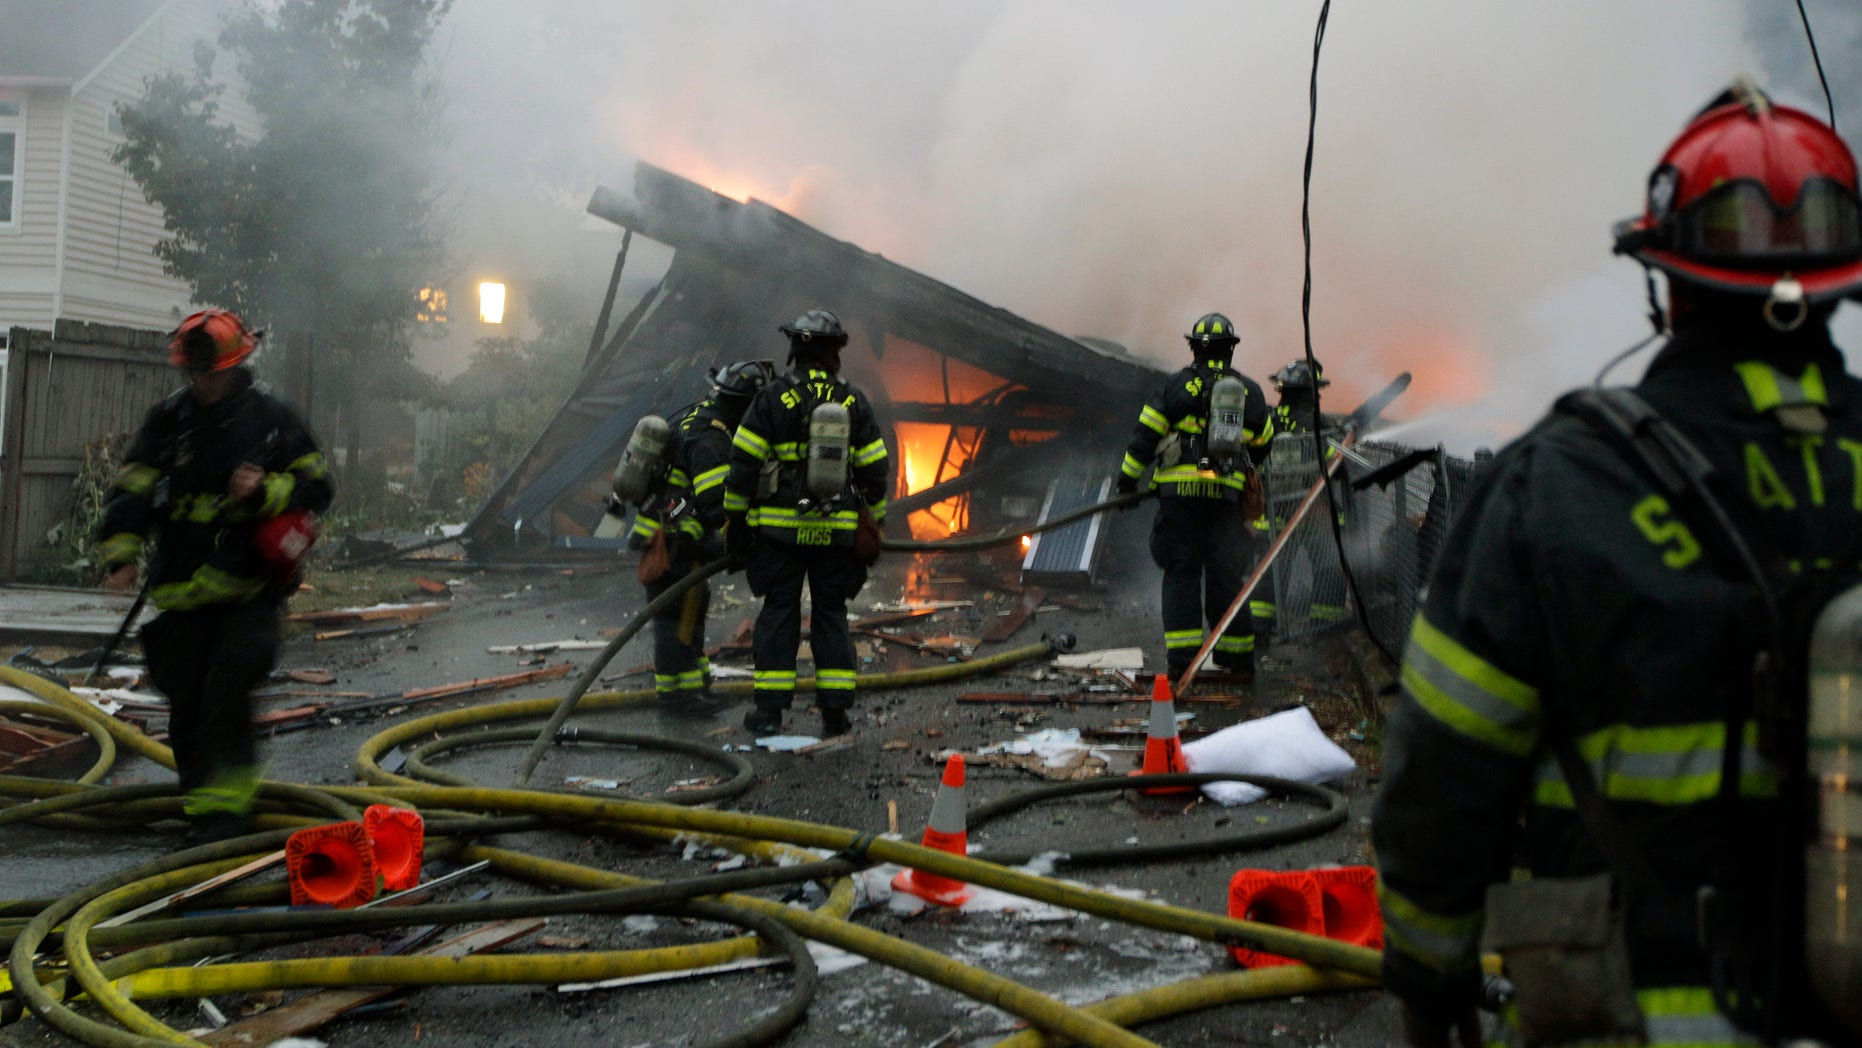 September 26: Seattle firefighters work to extinguish a fire at a home in Seattle following a large explosion. Two people were injured, one with life-threatening injuries and the other is in serious condition.